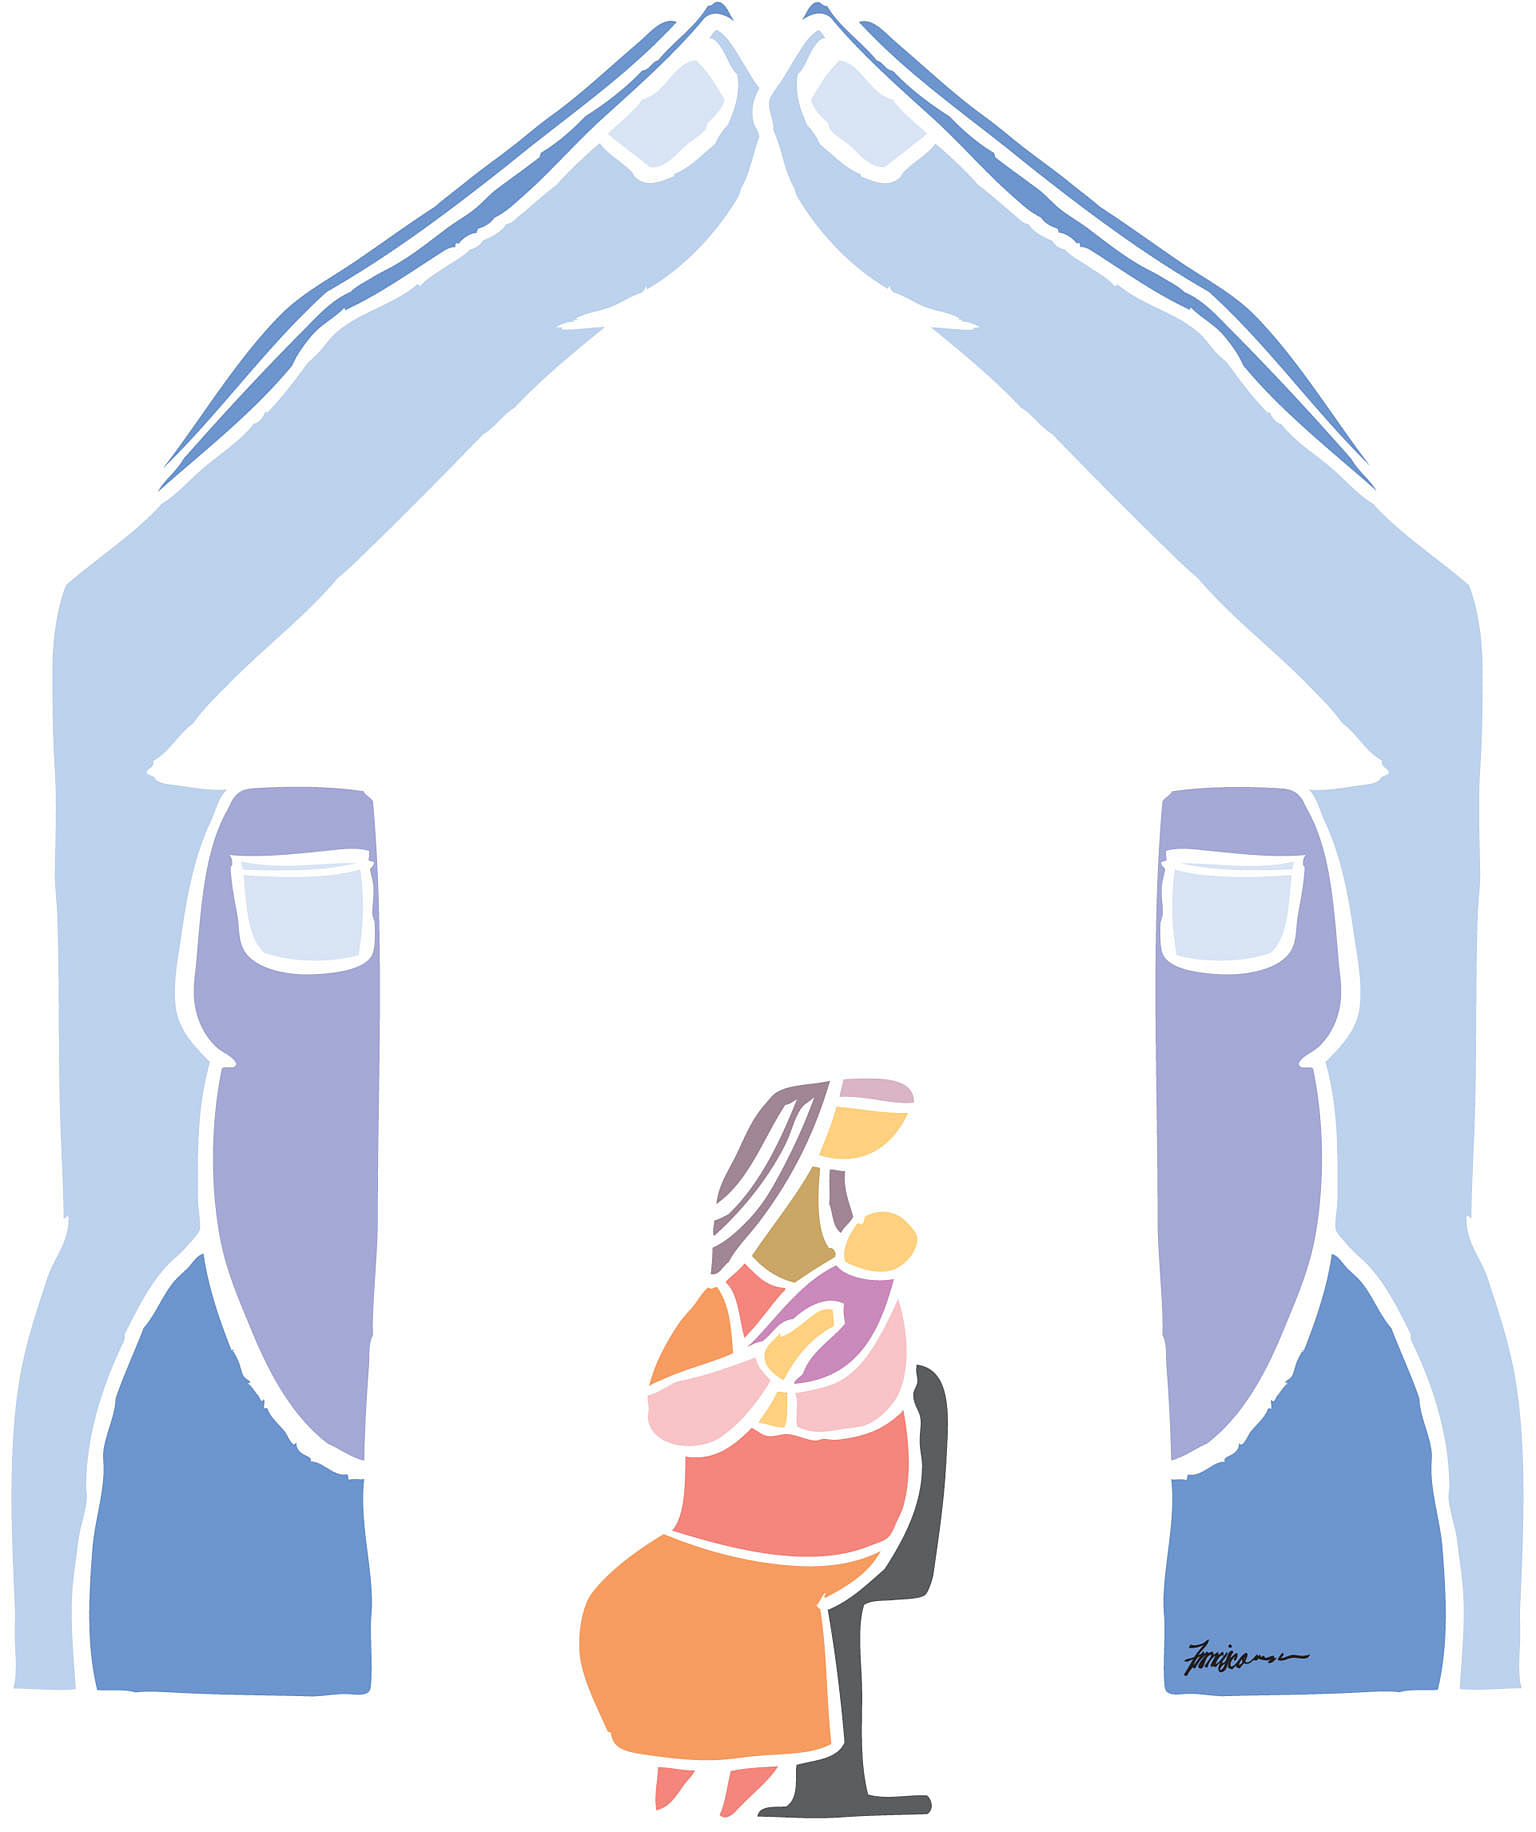 Giving unwed mothers more benefits an inclusive move